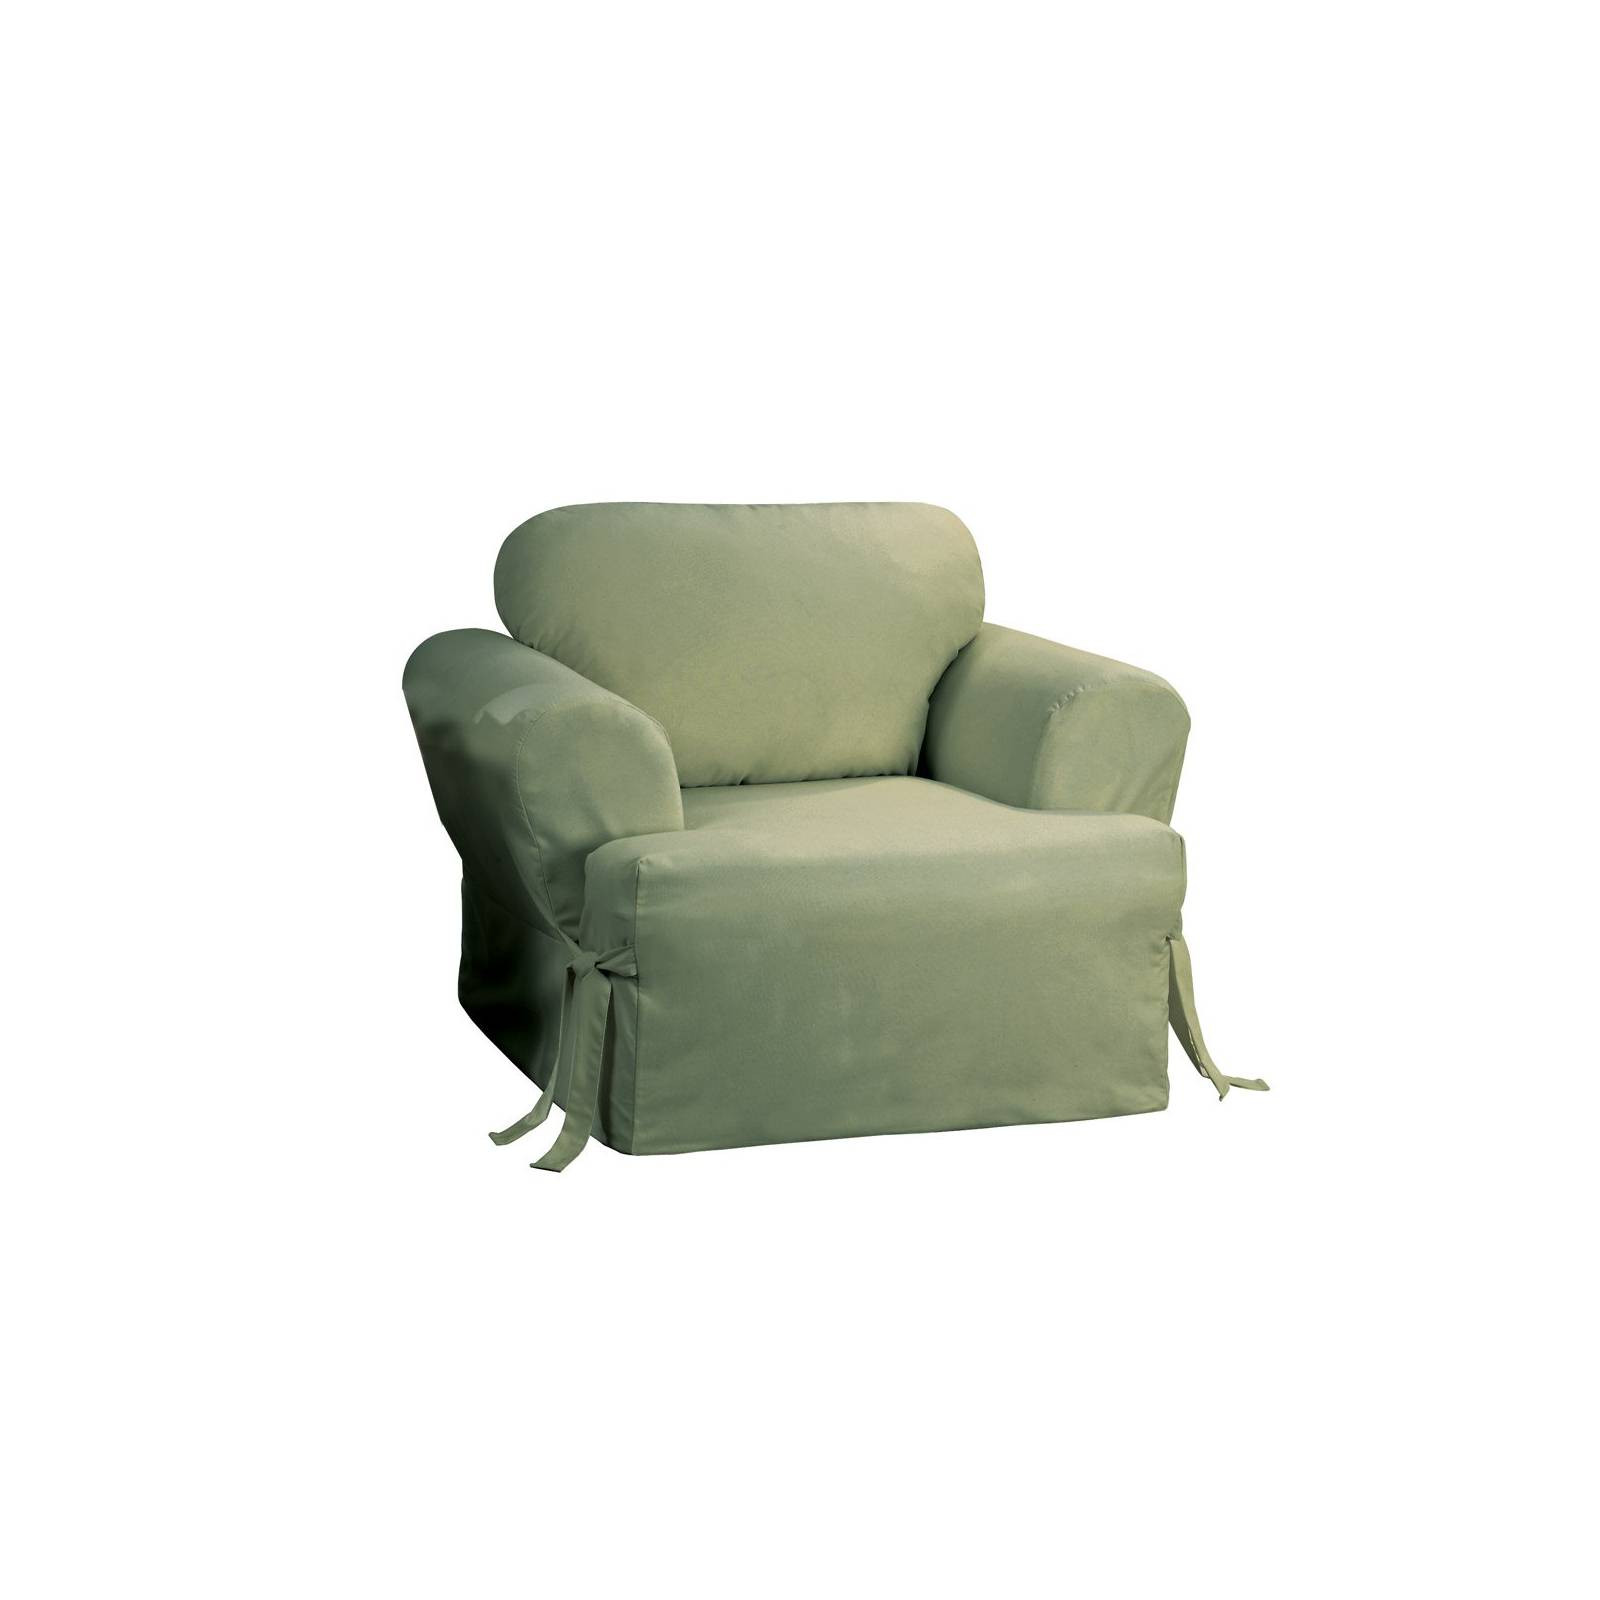 Best ideas about Surefit Chair Cover . Save or Pin Cotton Duck Tcushion Chair Slipcover Sure Fit Now.